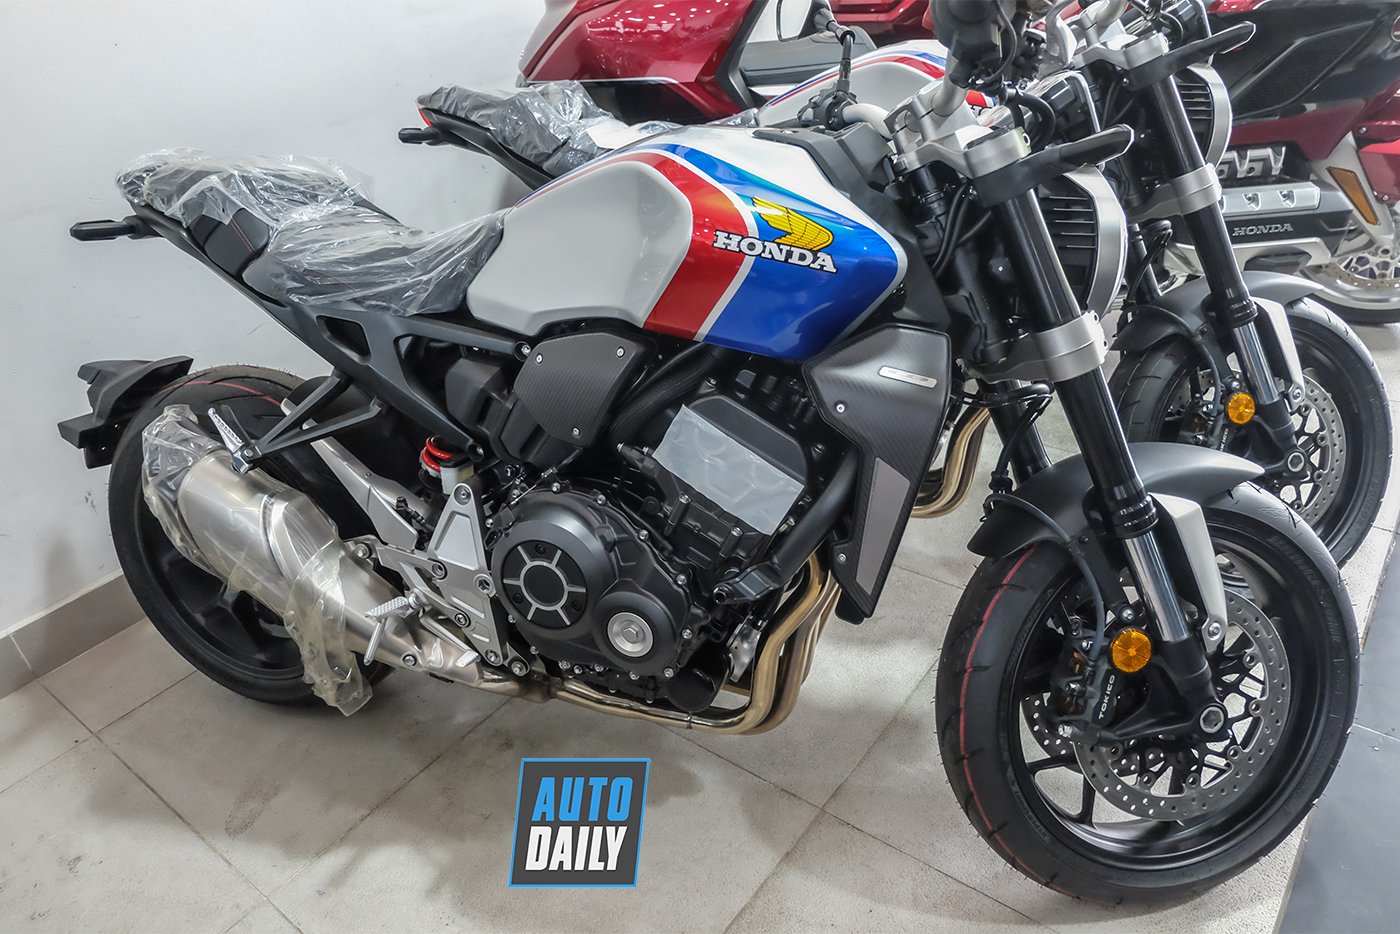 honda-cb1000r-plus-limited-edition-2019-7.jpg